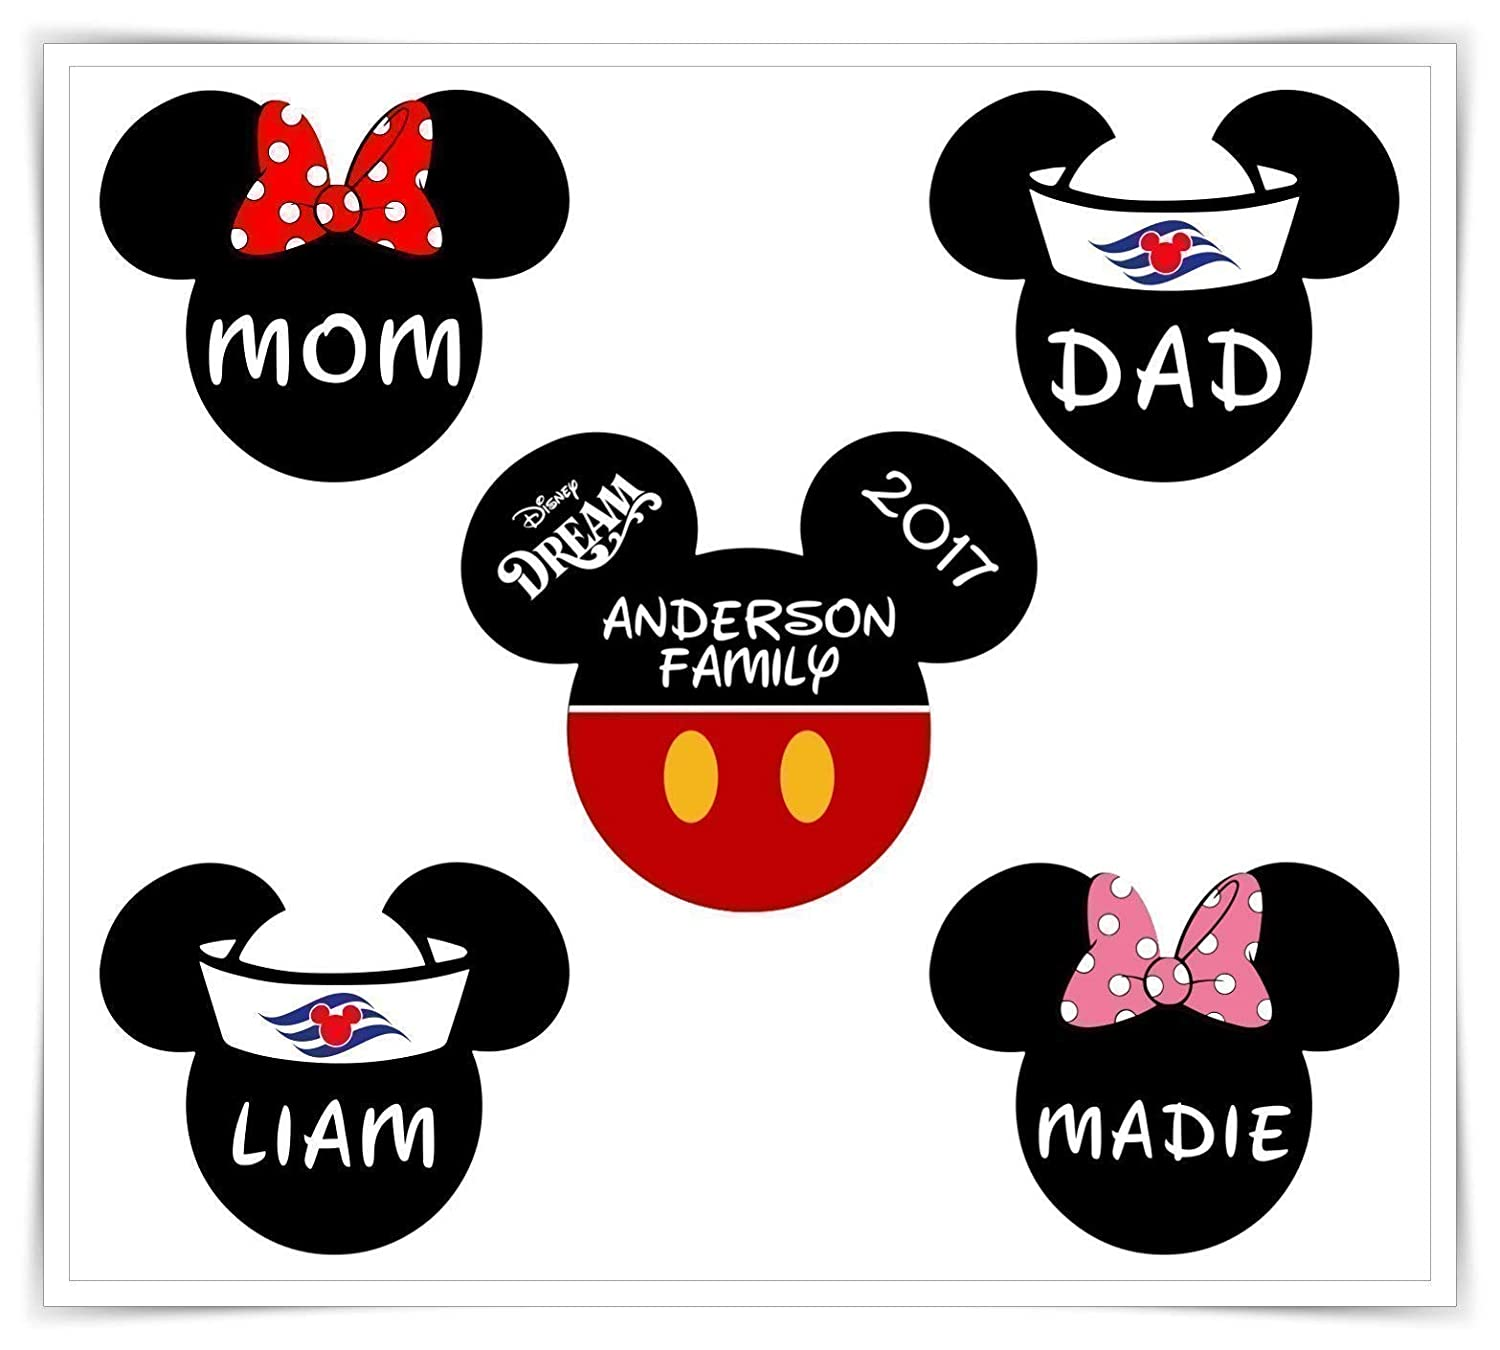 image about Disney Cruise Door Decorations Printable named Custom made Disney Influenced Clic Mickey Magnet Cruise Doorway Magnet  Mickey Minnie Magnet Stateroom Doorway Decoration.